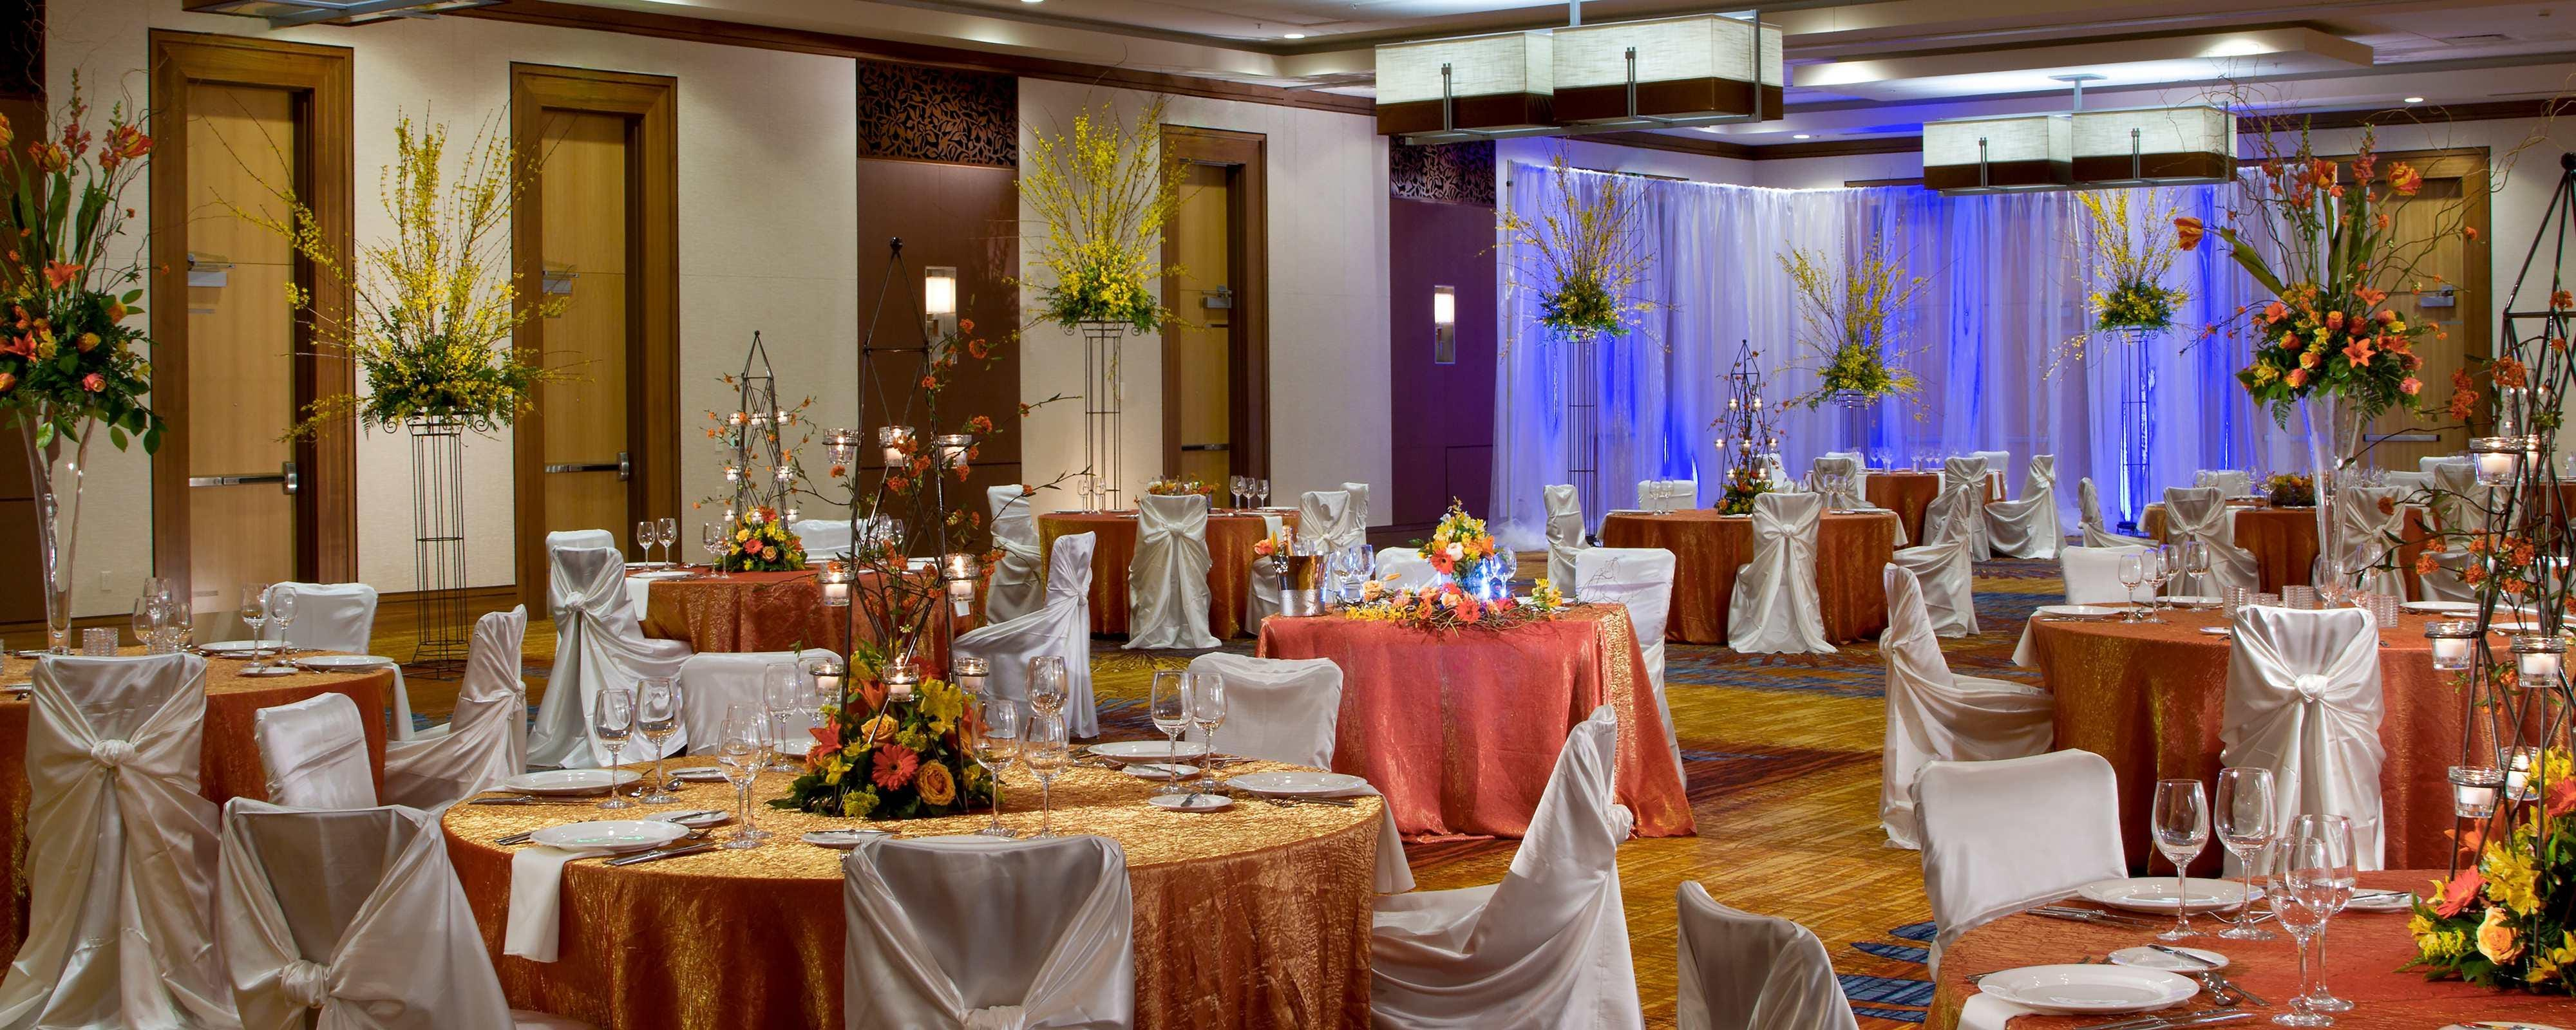 Wedding Reception Venues in Downtown Indianapolis